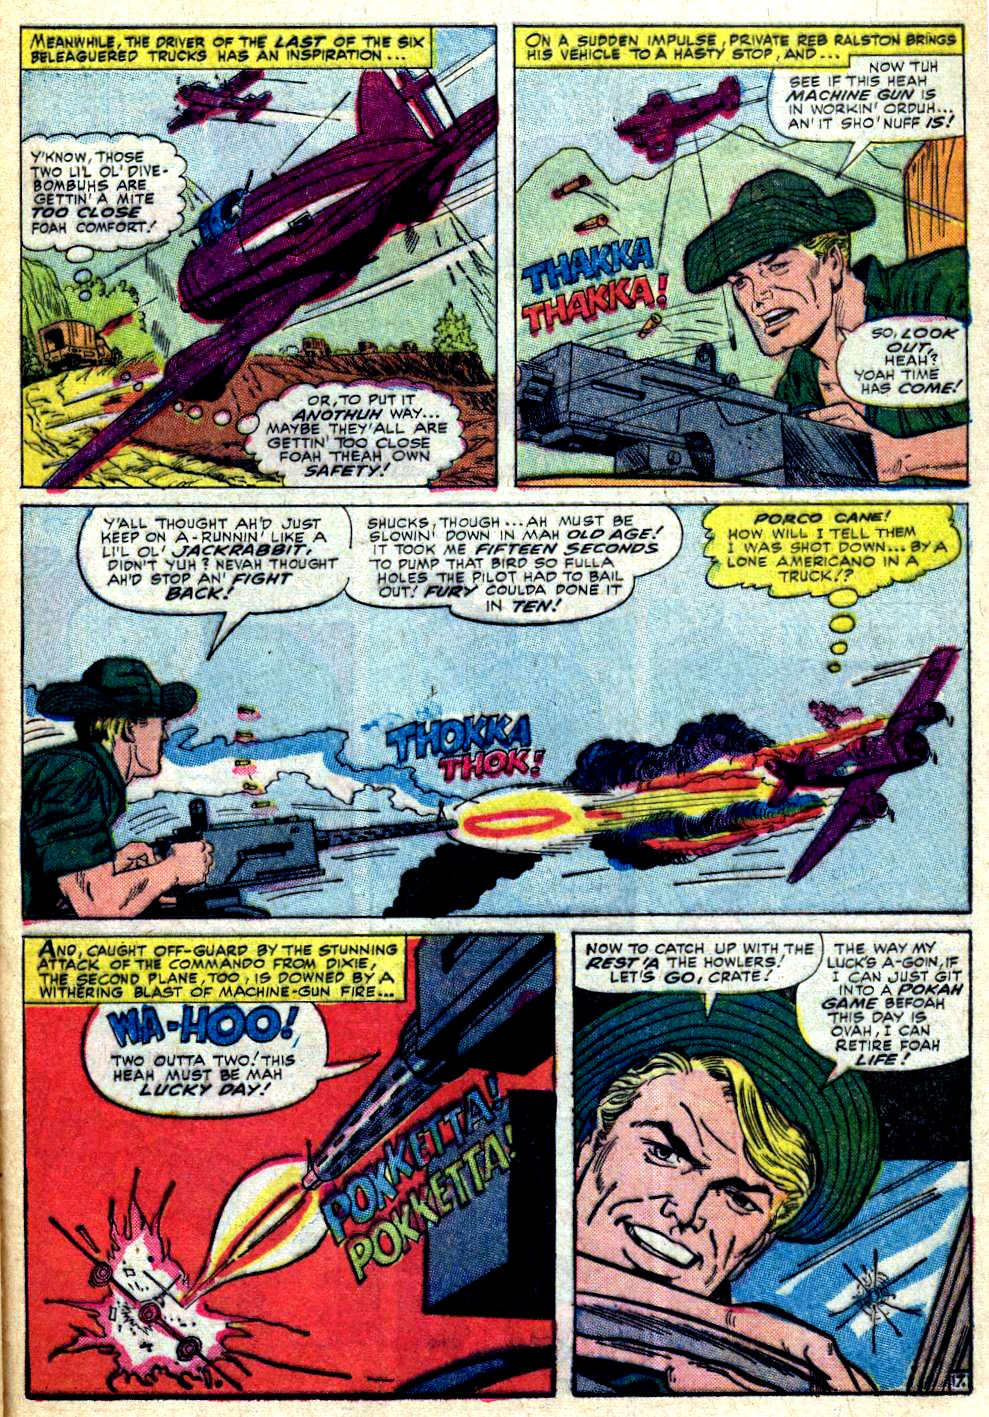 Read online Sgt. Fury comic -  Issue #30 - 25